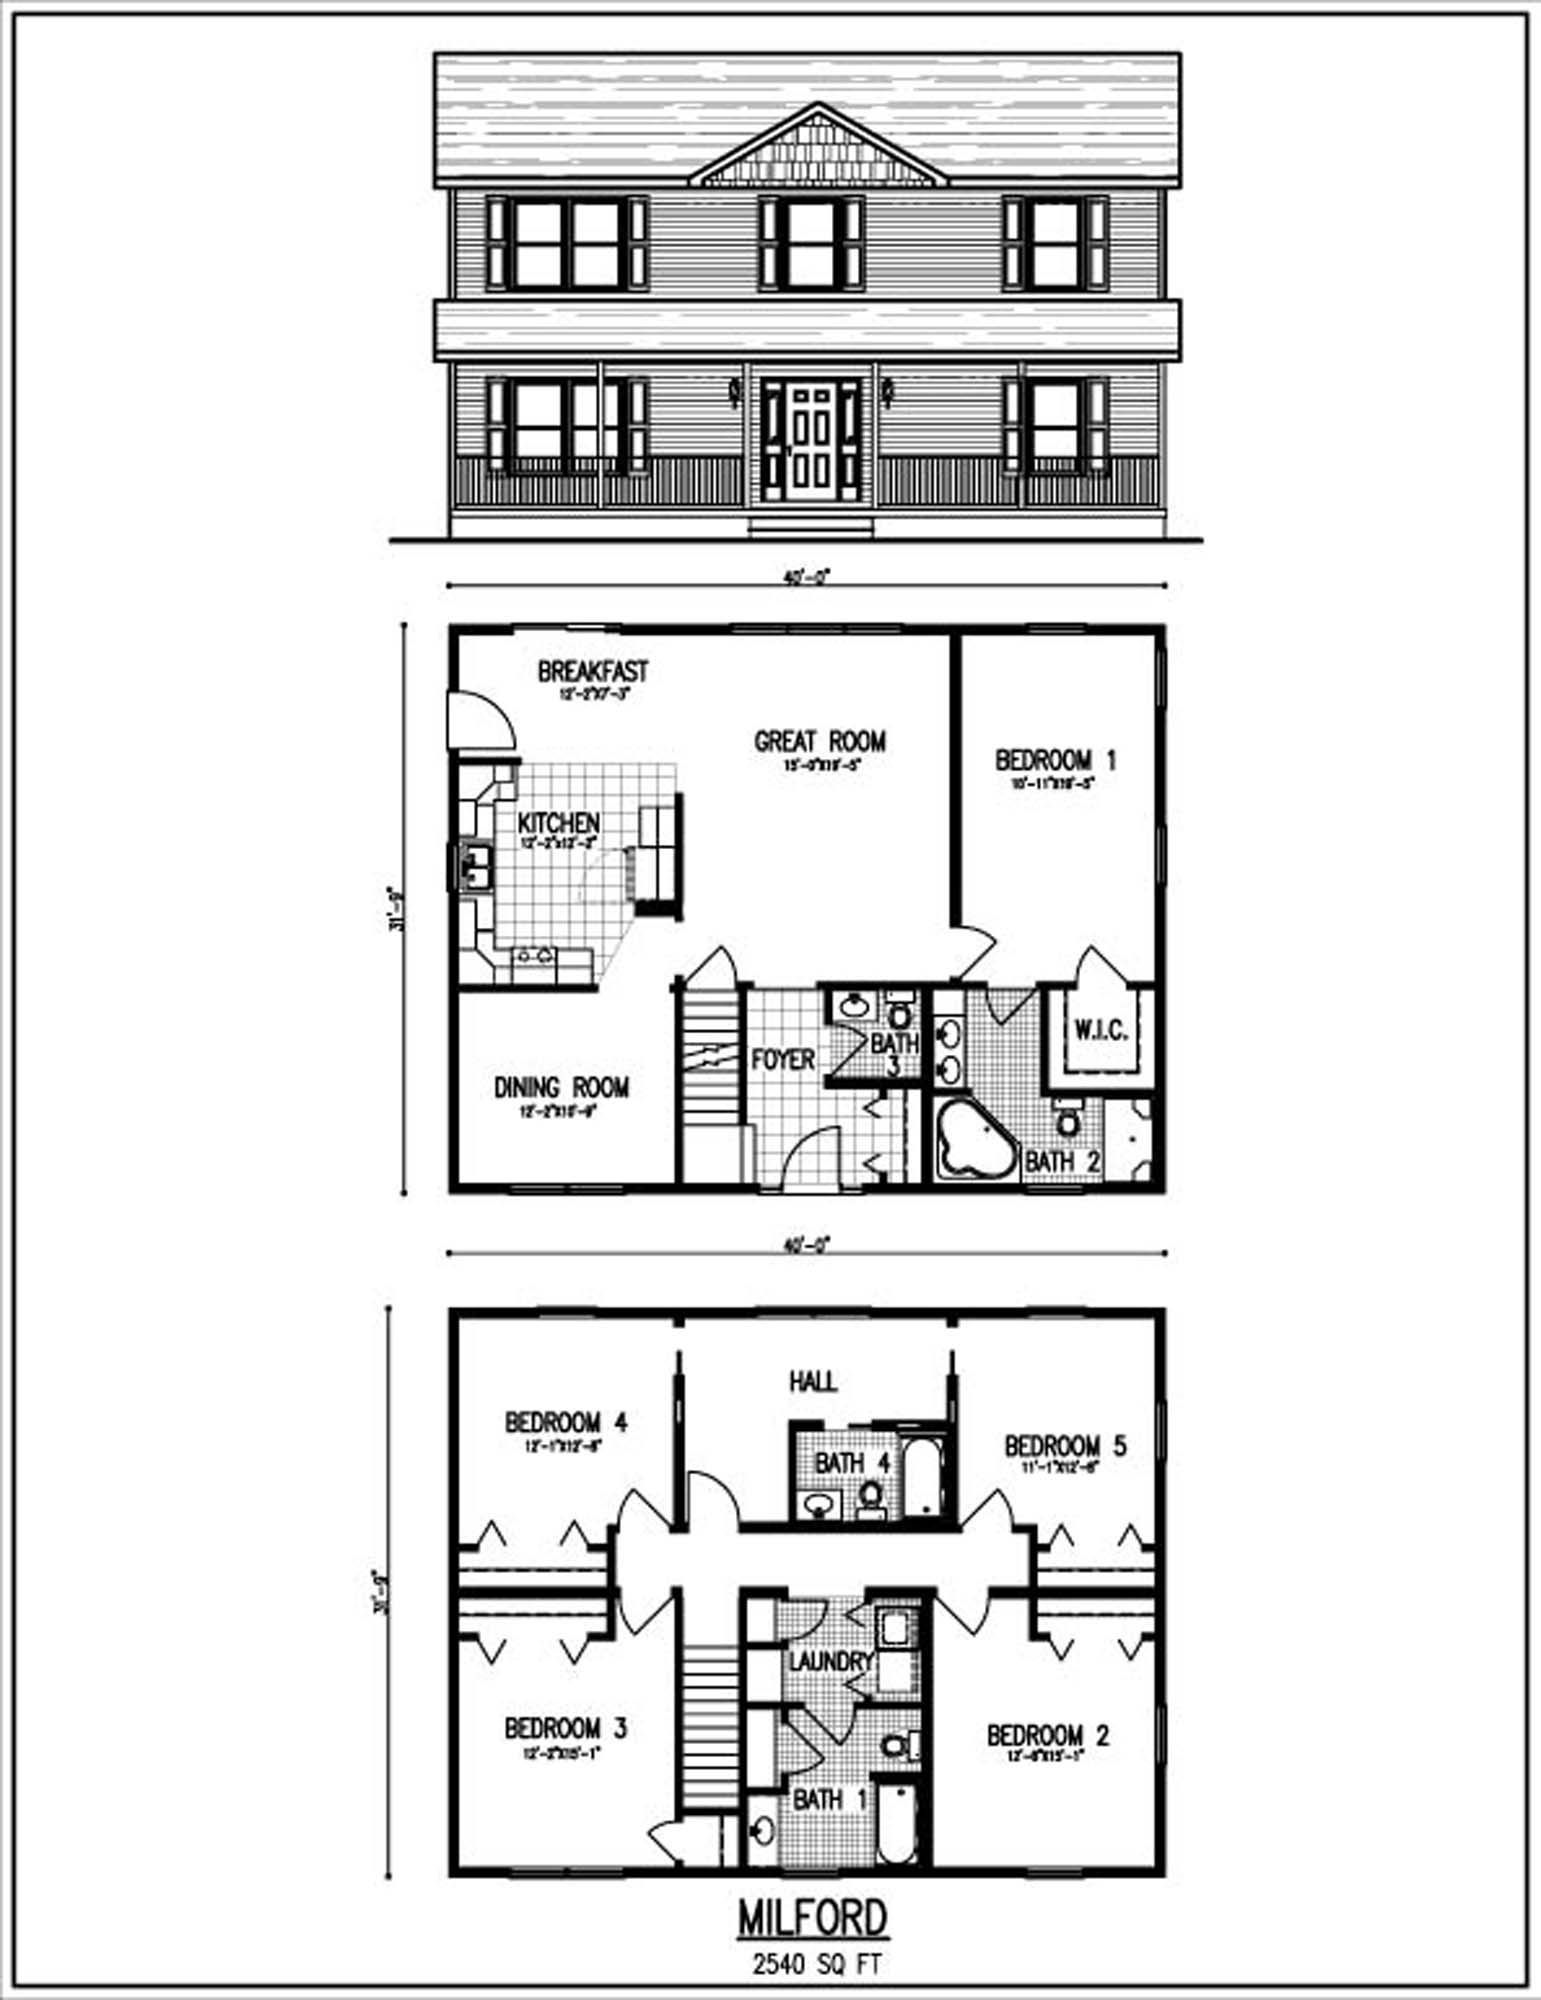 Two Story House Plans Canada Apartmentsdesign Bedroomdesign Falsecailingdesign Farmhousedesi House Plans 2 Storey Two Story House Plans Narrow House Plans